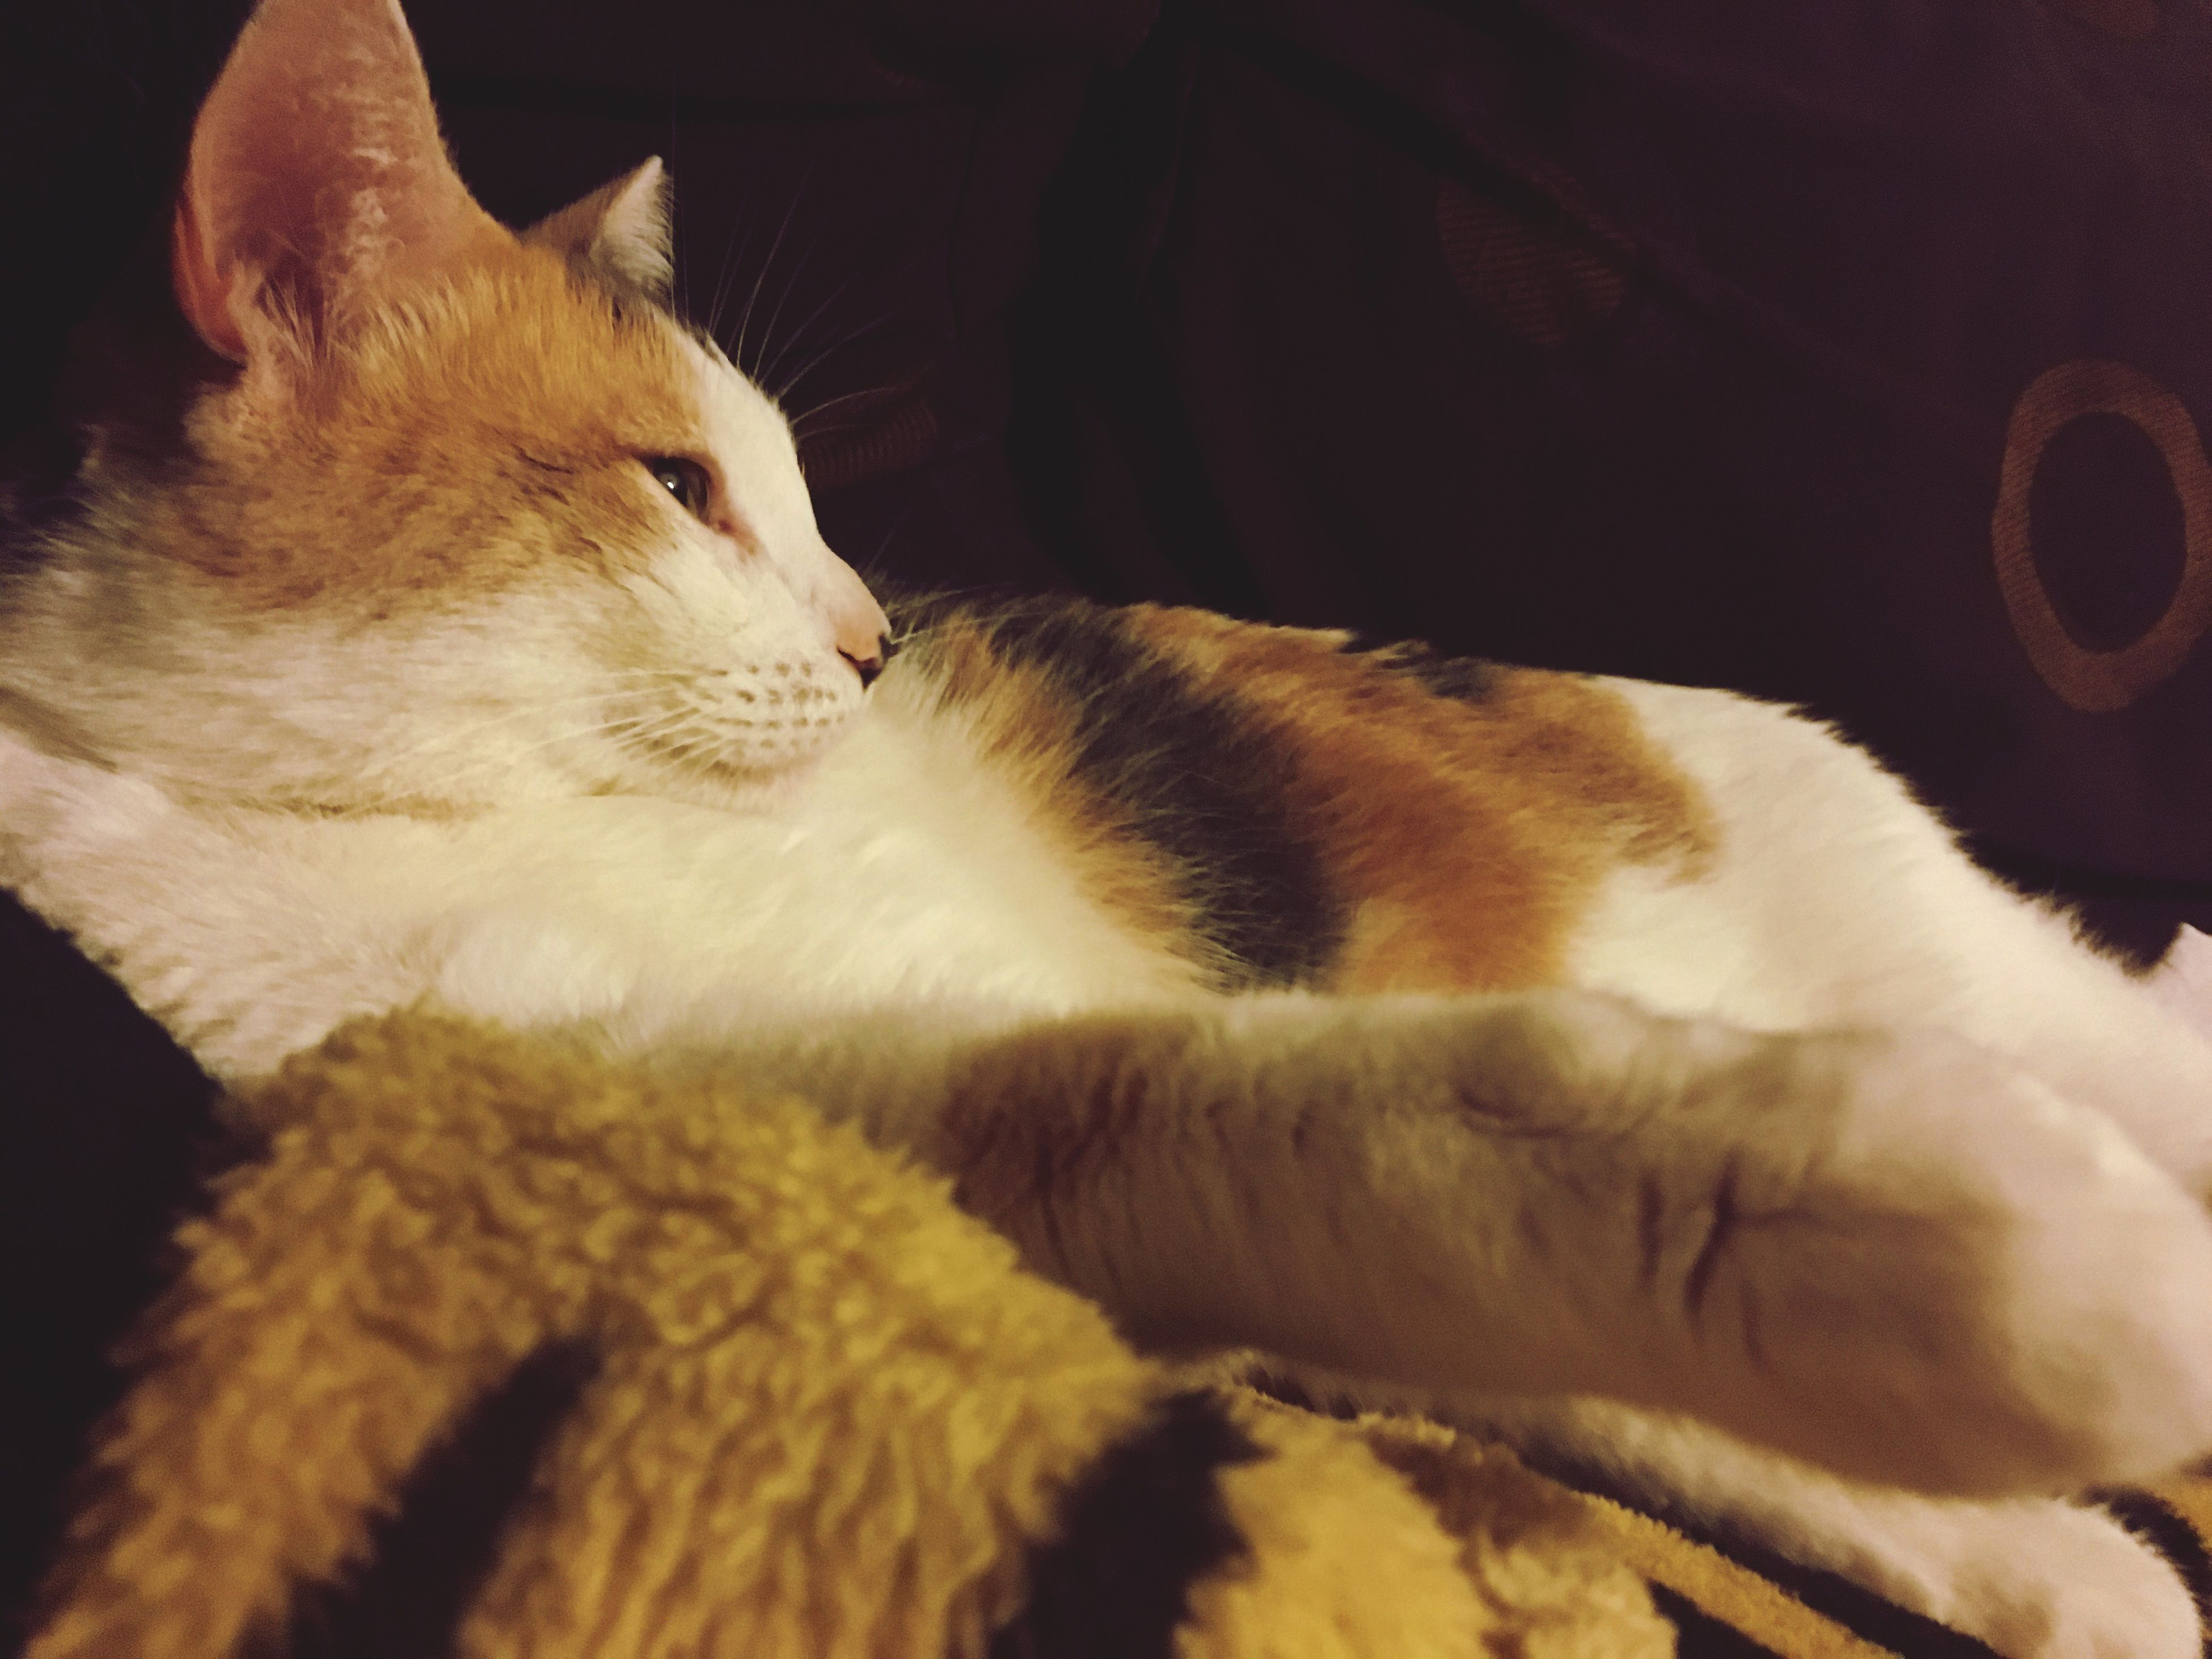 domestic animals, domestic cat, animal themes, pets, mammal, cat, feline, relaxation, sleeping, resting, lying down, whisker, eyes closed, close-up, comfortable, animal, animal head, no people, home, napping, animal body part